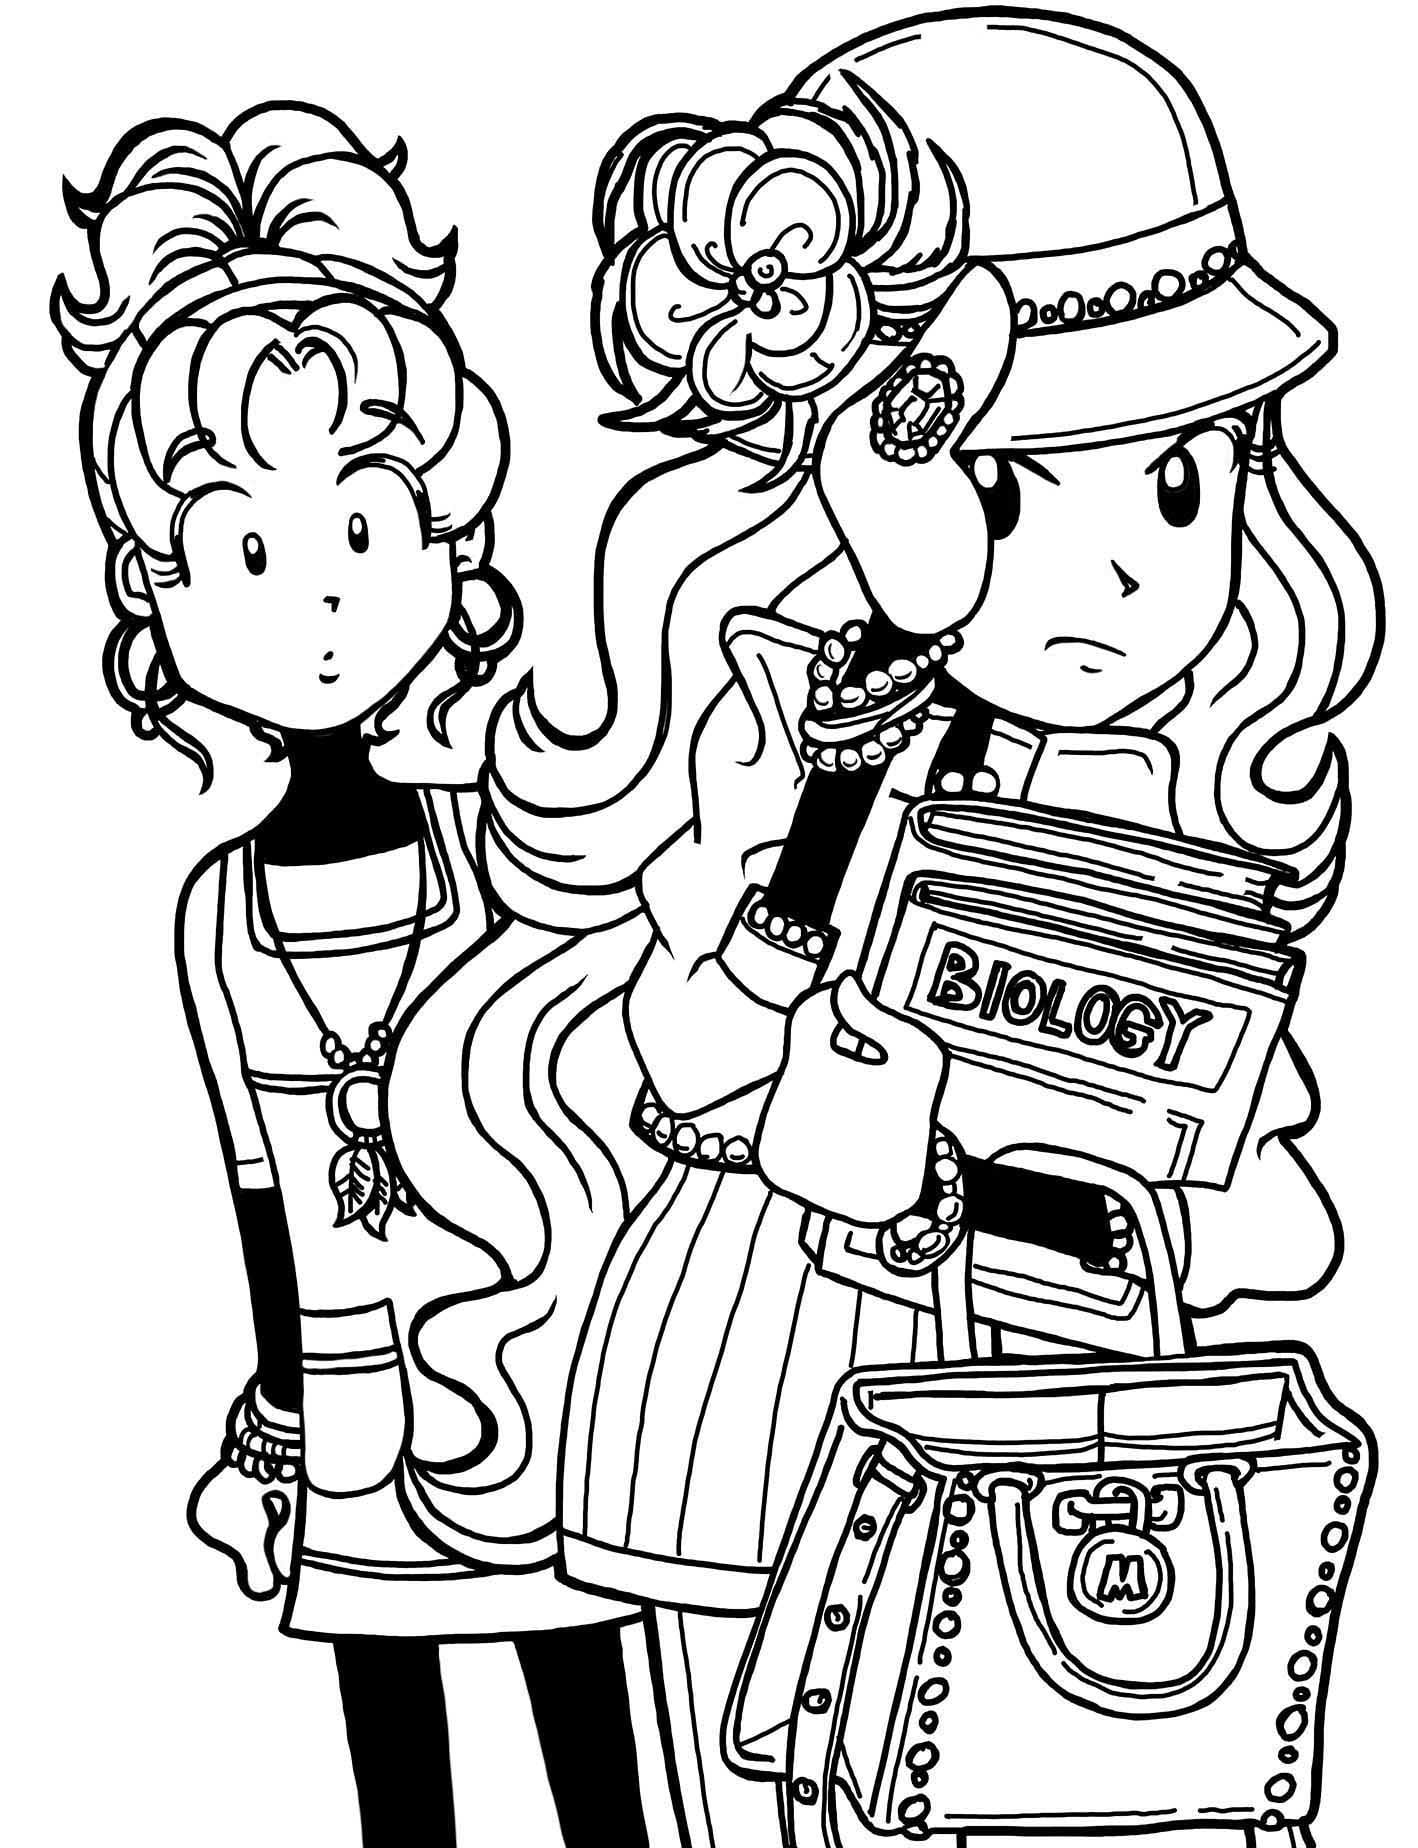 Cool Dork Diaries Coloring Pages Free Book In